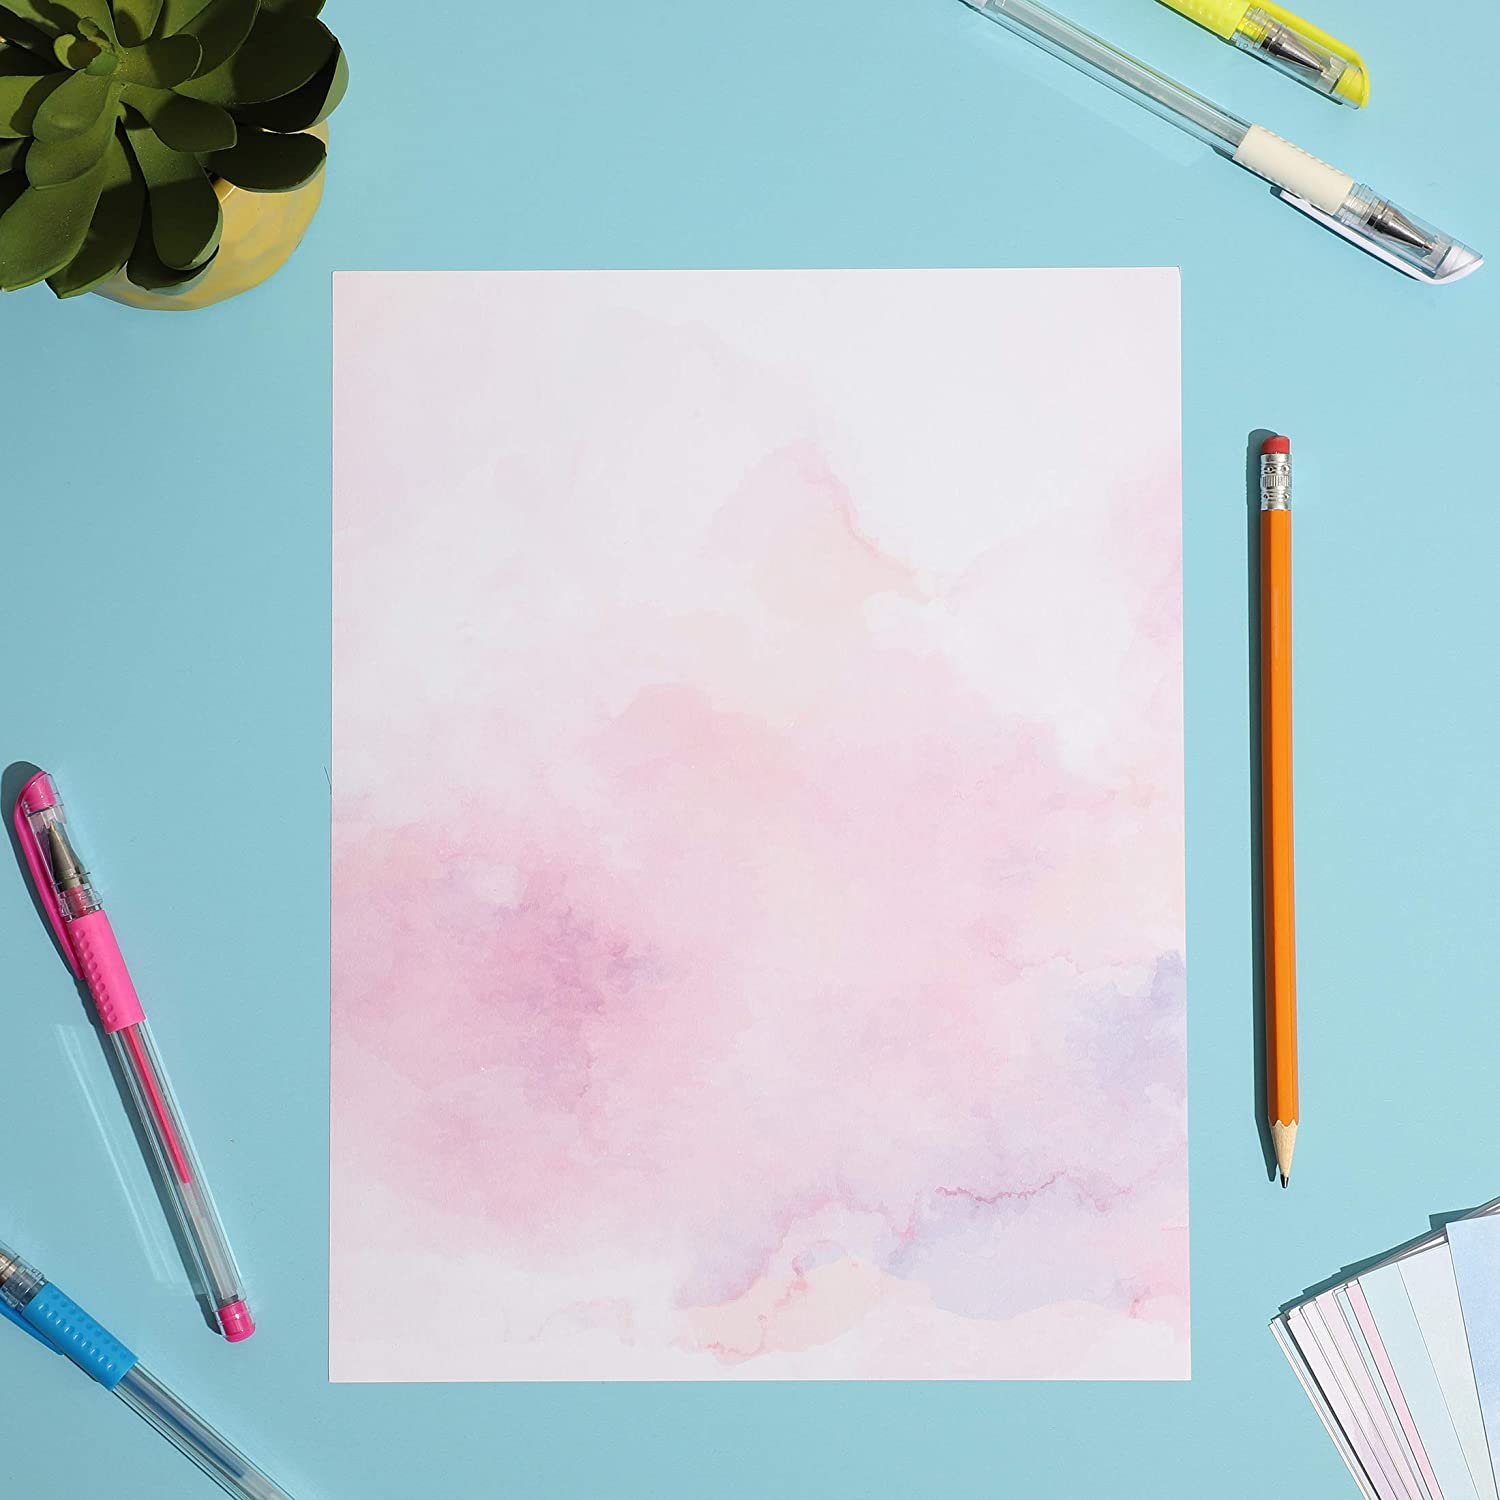 60 Sheets Stationary Papers 12 Scenic Watercolor Styles Writing Stationary Papers Letter 8.2 x 11.2 Inches Double Sided Writing Paper